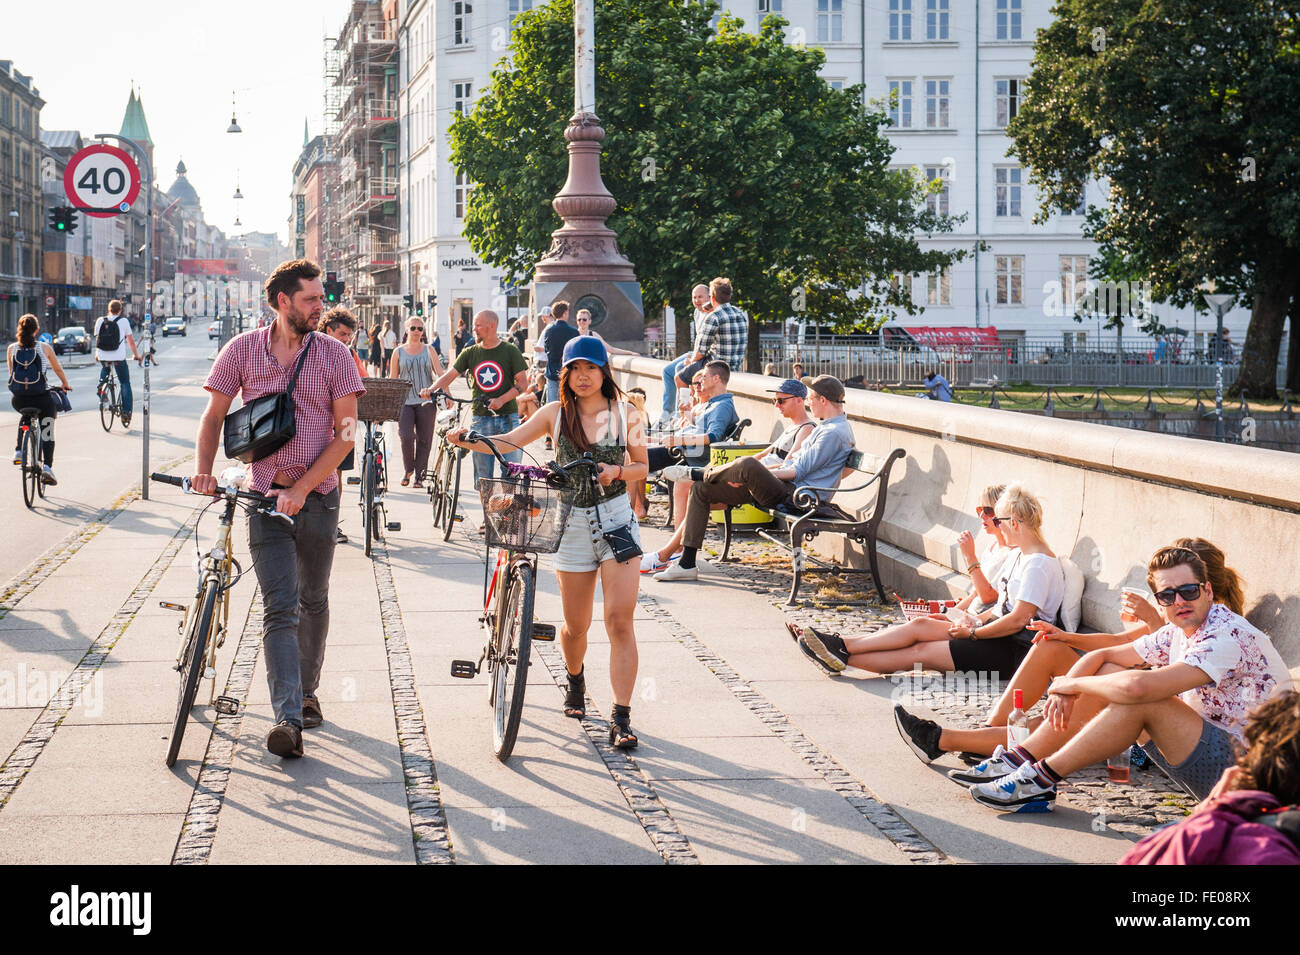 Young people hanging out in summer on Copenhagen's Dronning Louises Bro, in Norrebro area, Denmark - Stock Image